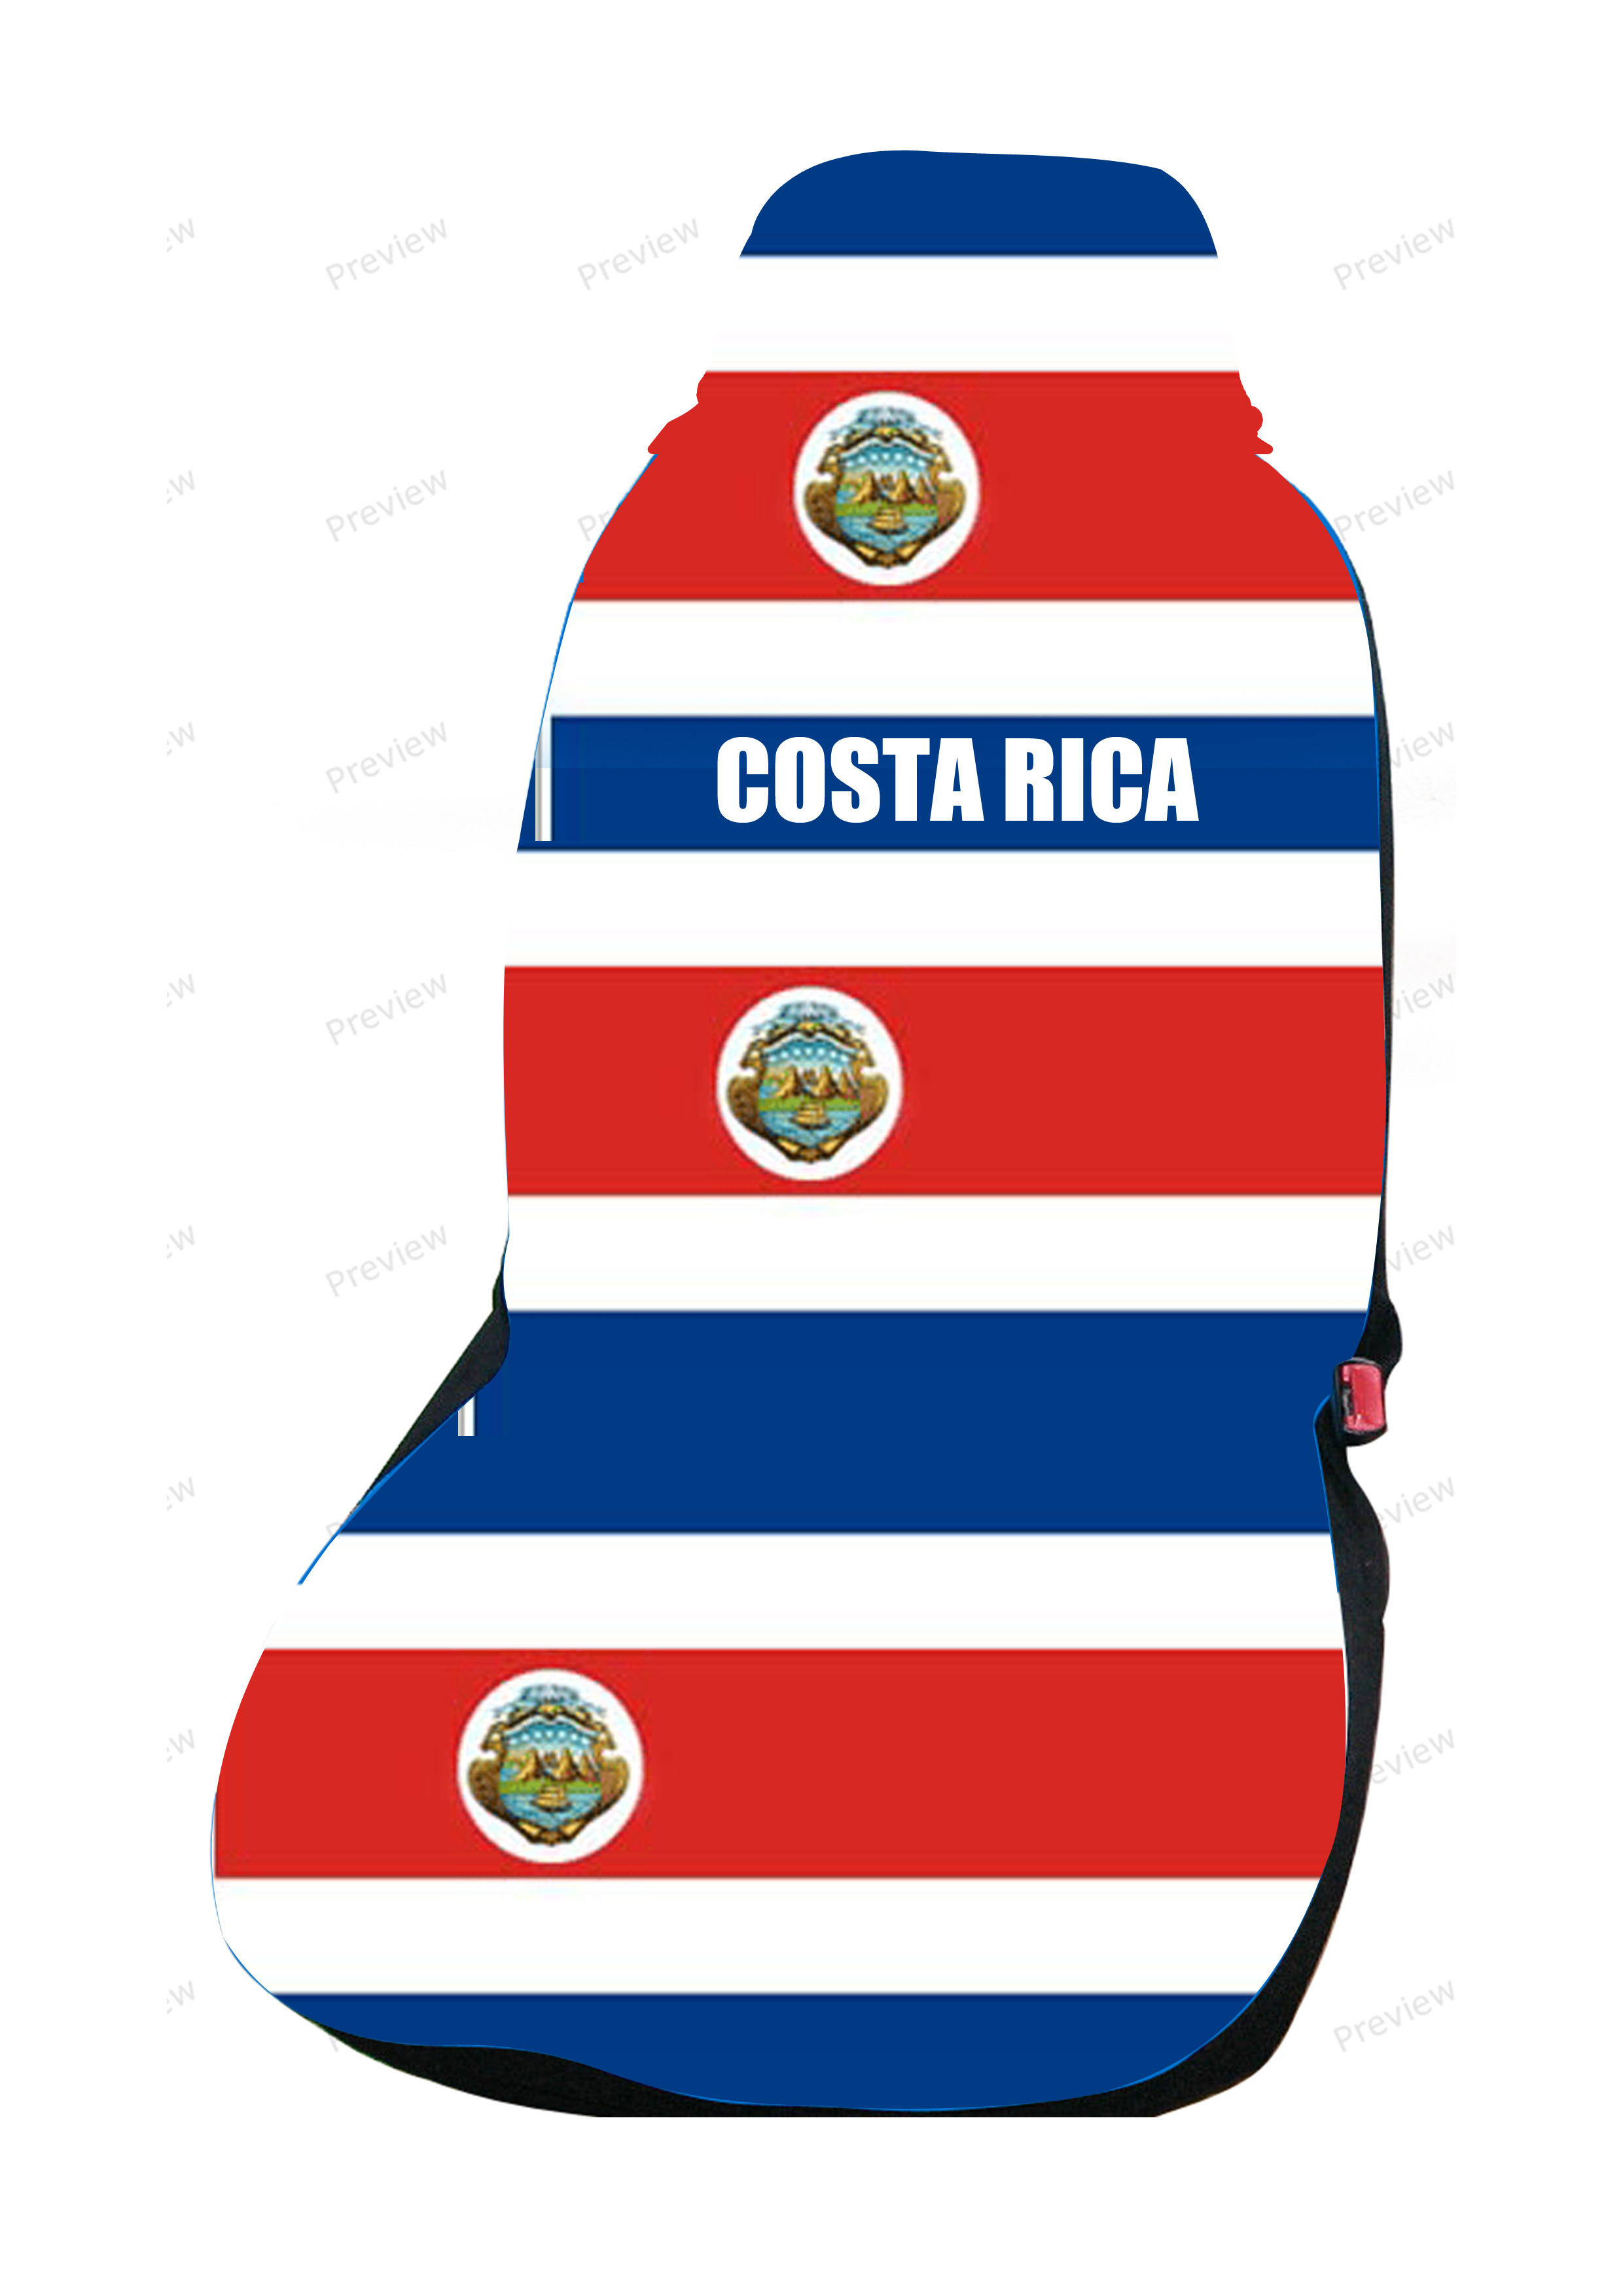 images/Costa Rica Car Cover Seat Flag.jpg